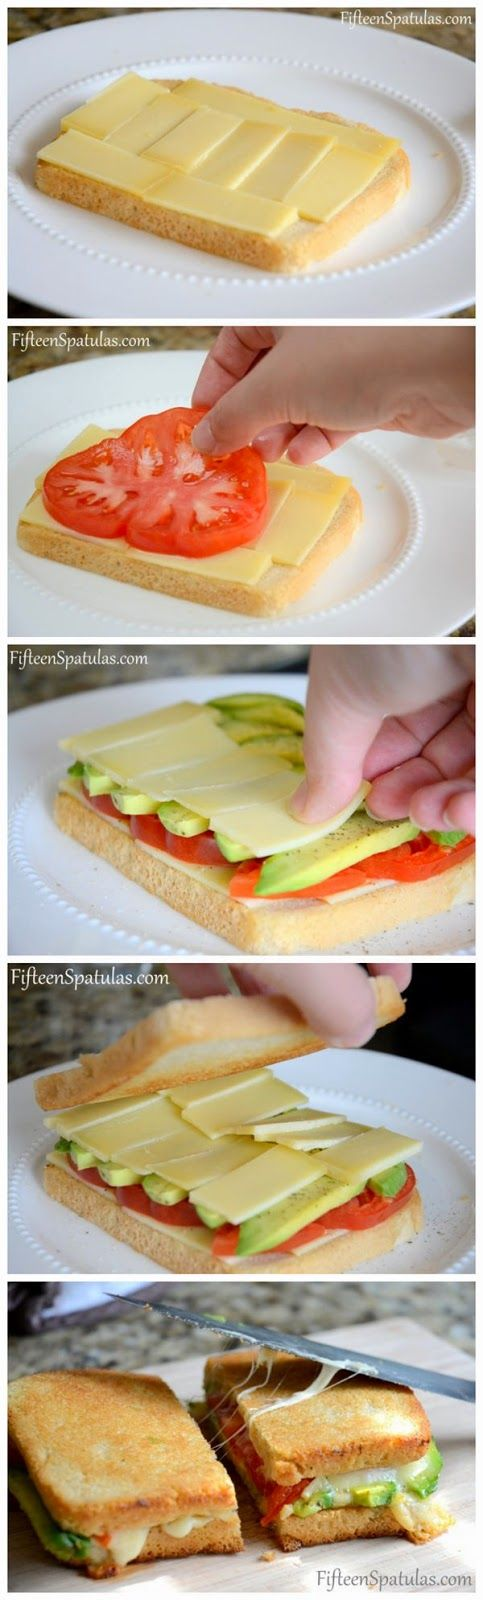 Grilled Cheese with Avocado & Tomato